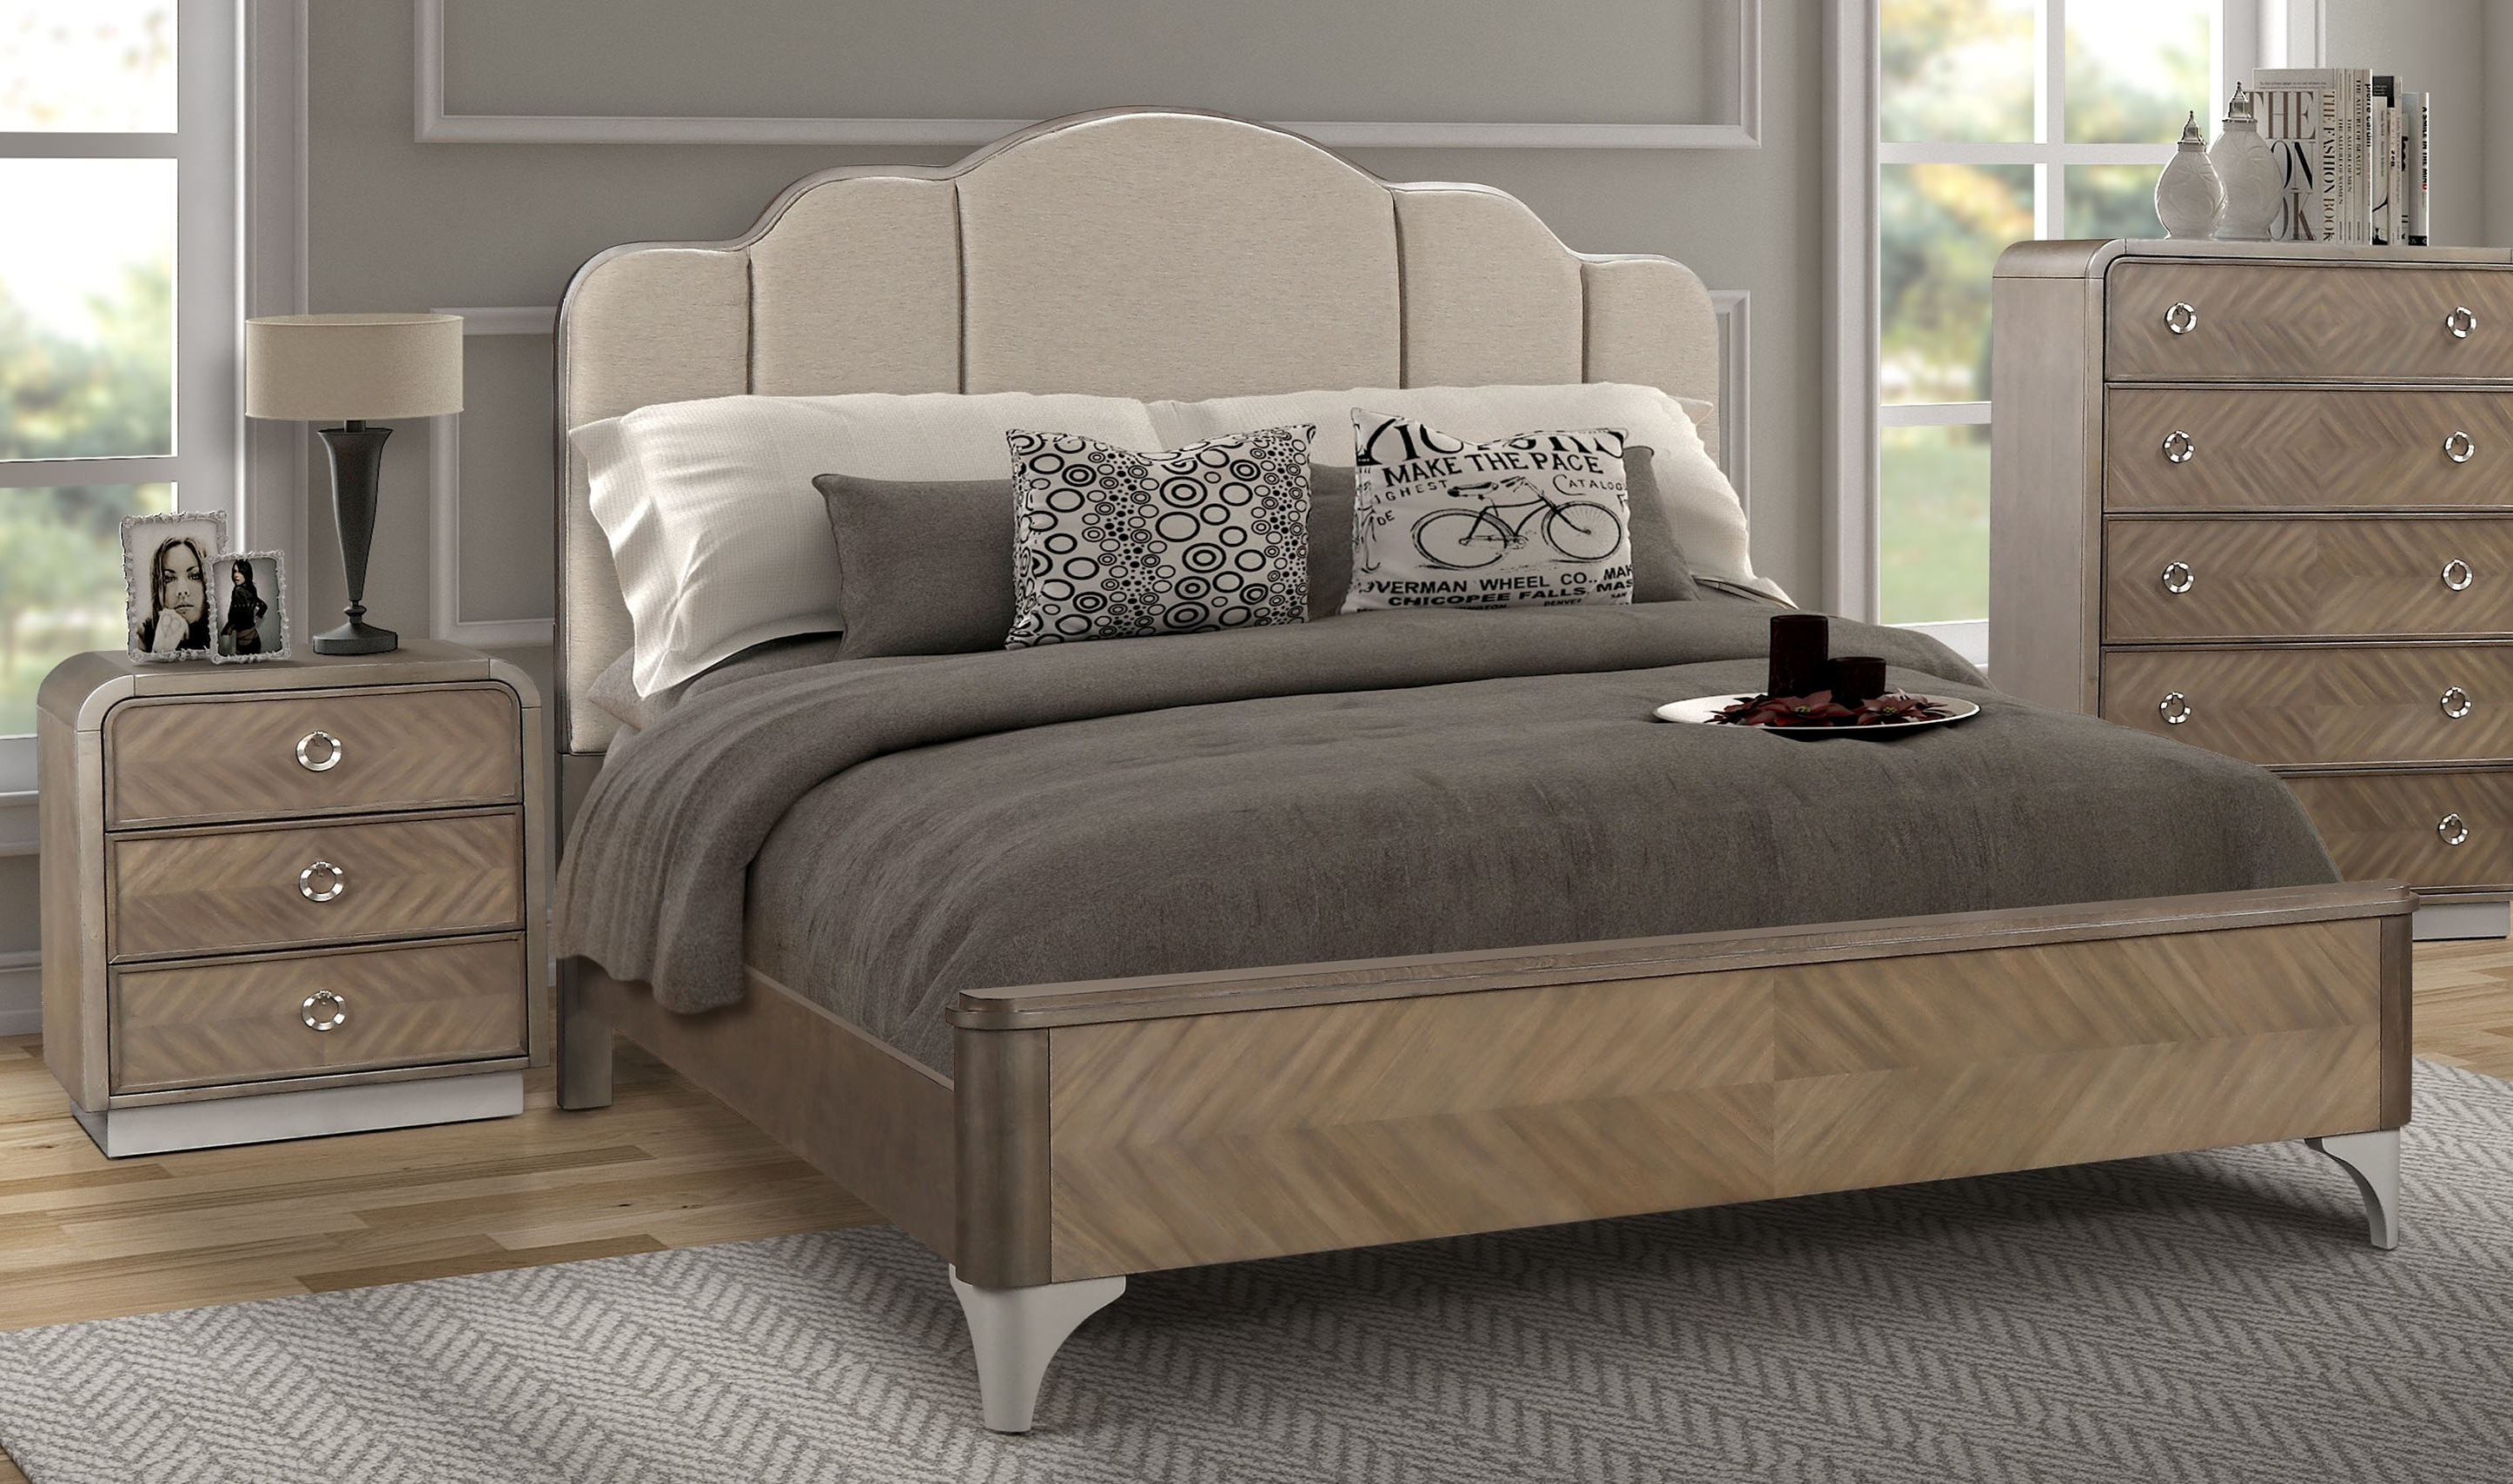 South Sea Cascade Upholstered 2pc Cal King Bedroom Set The